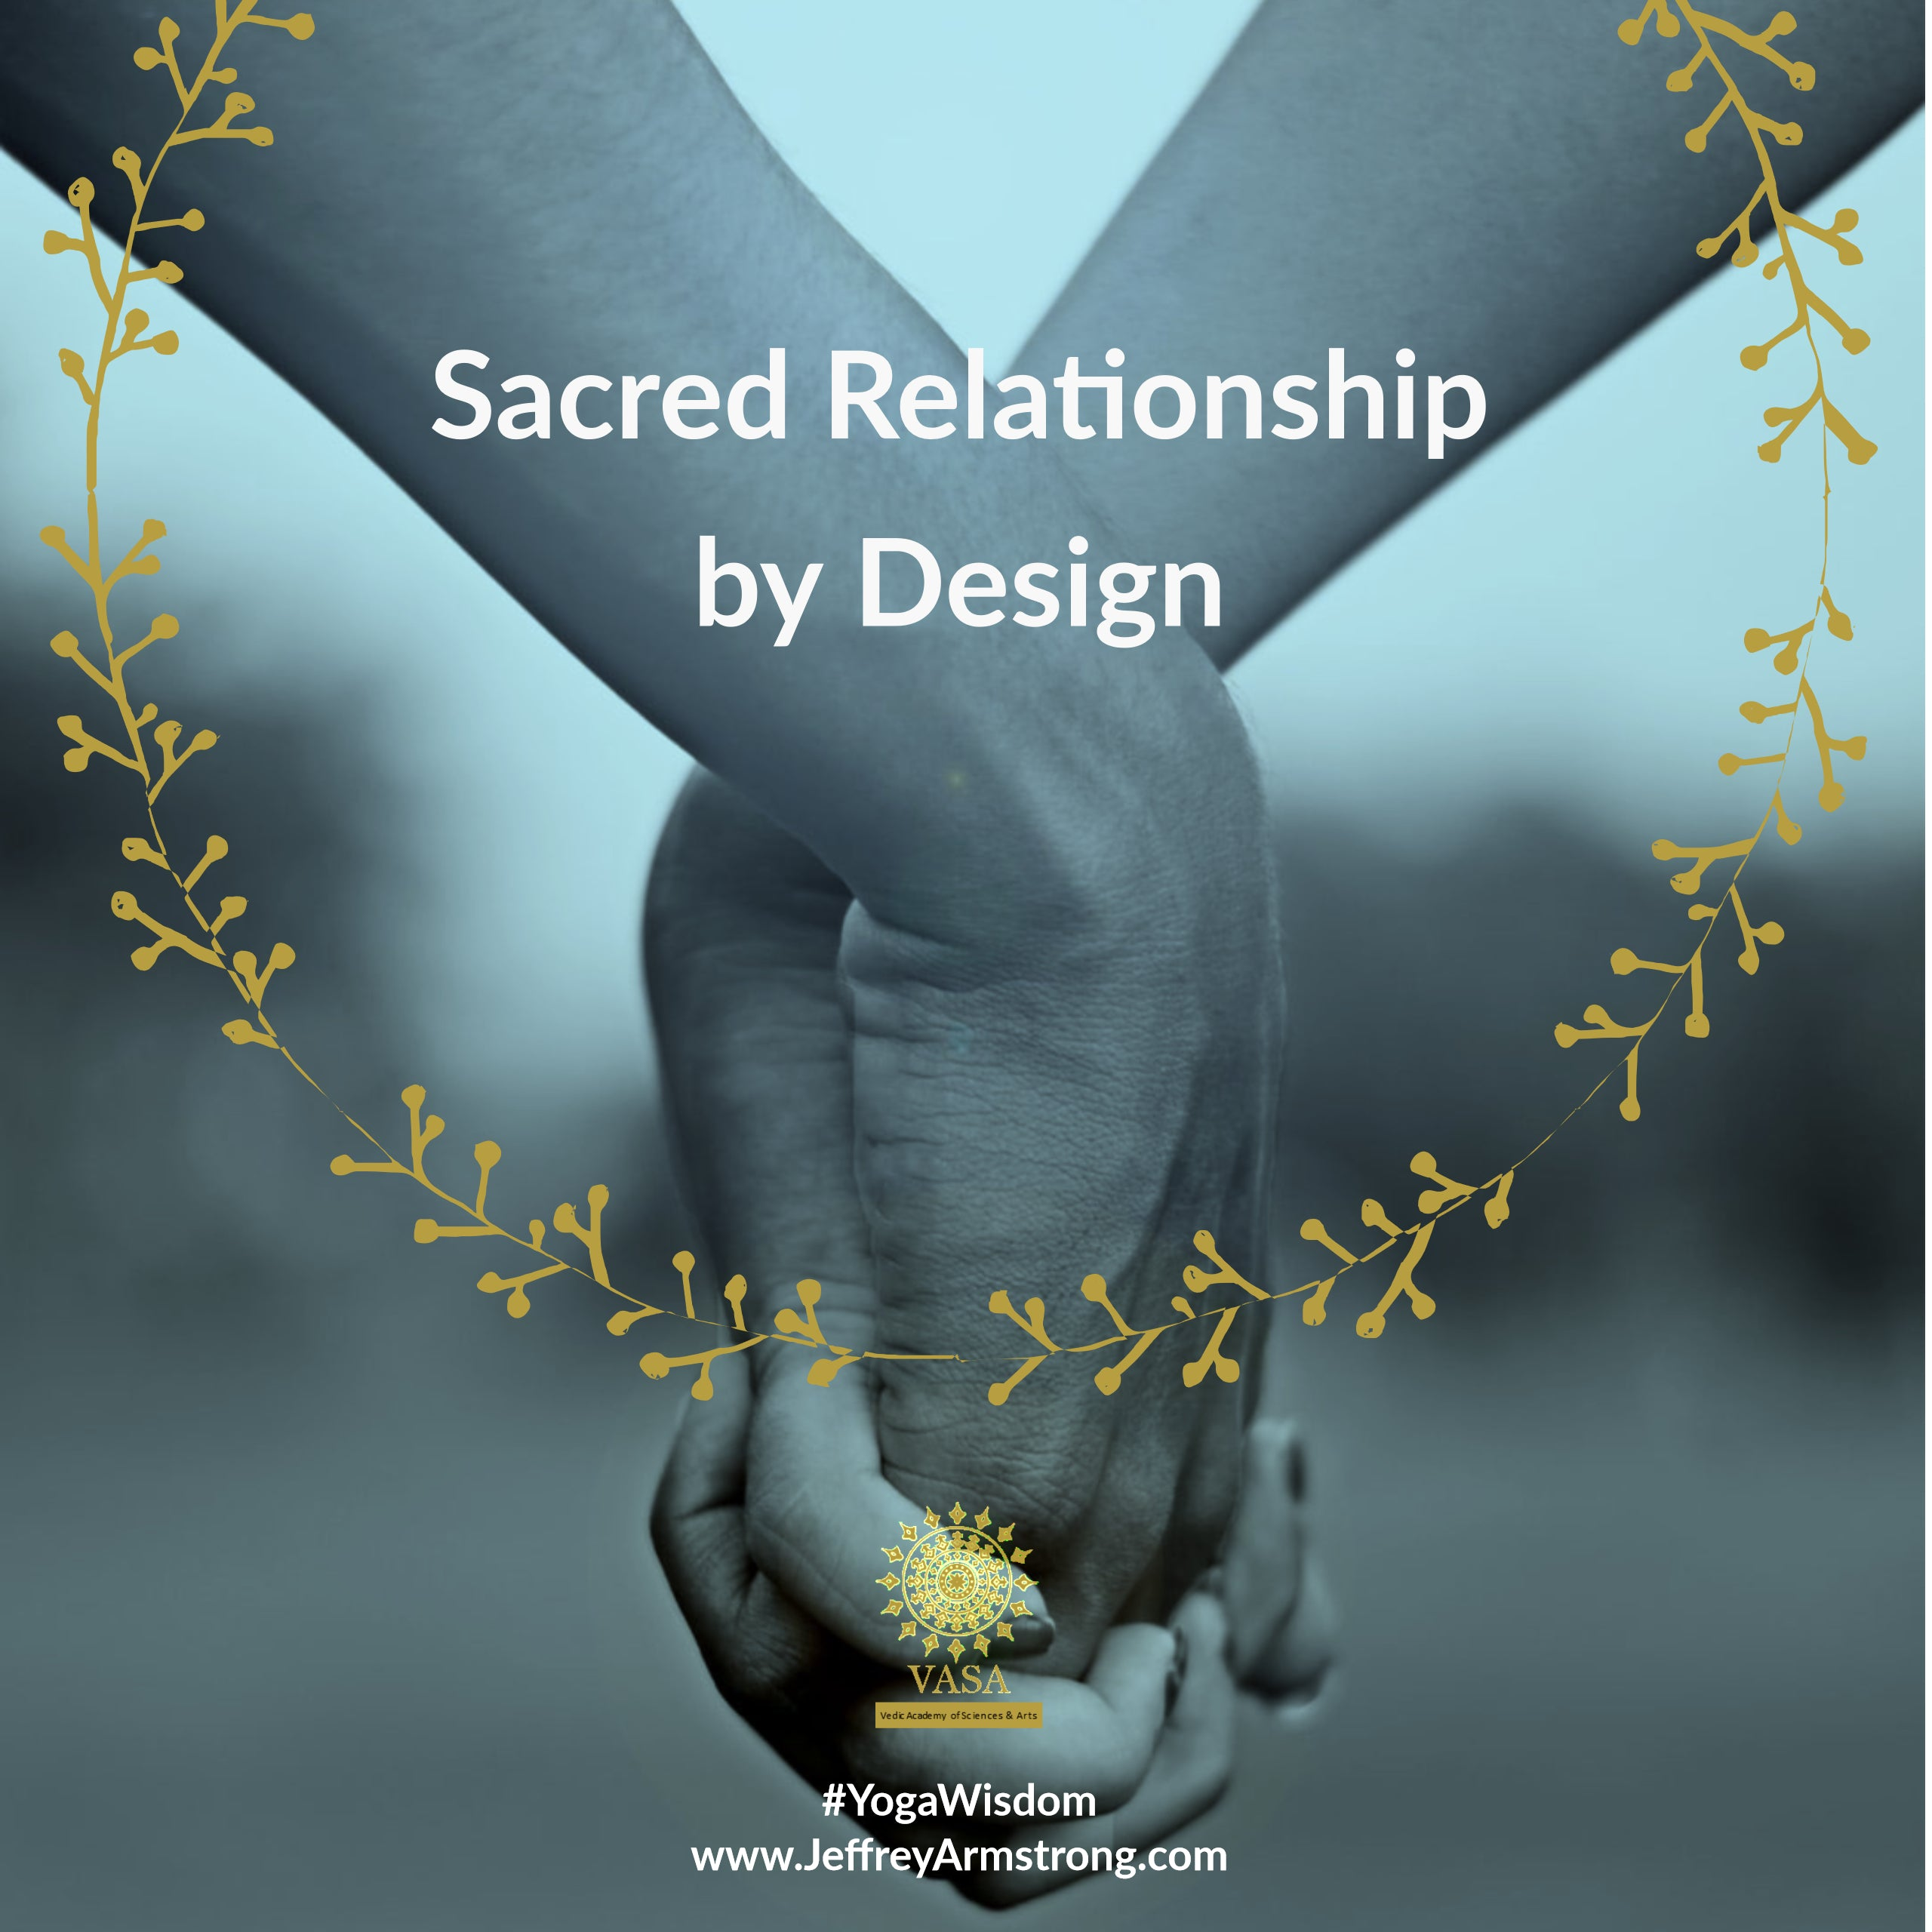 Sacred Relationship by Design